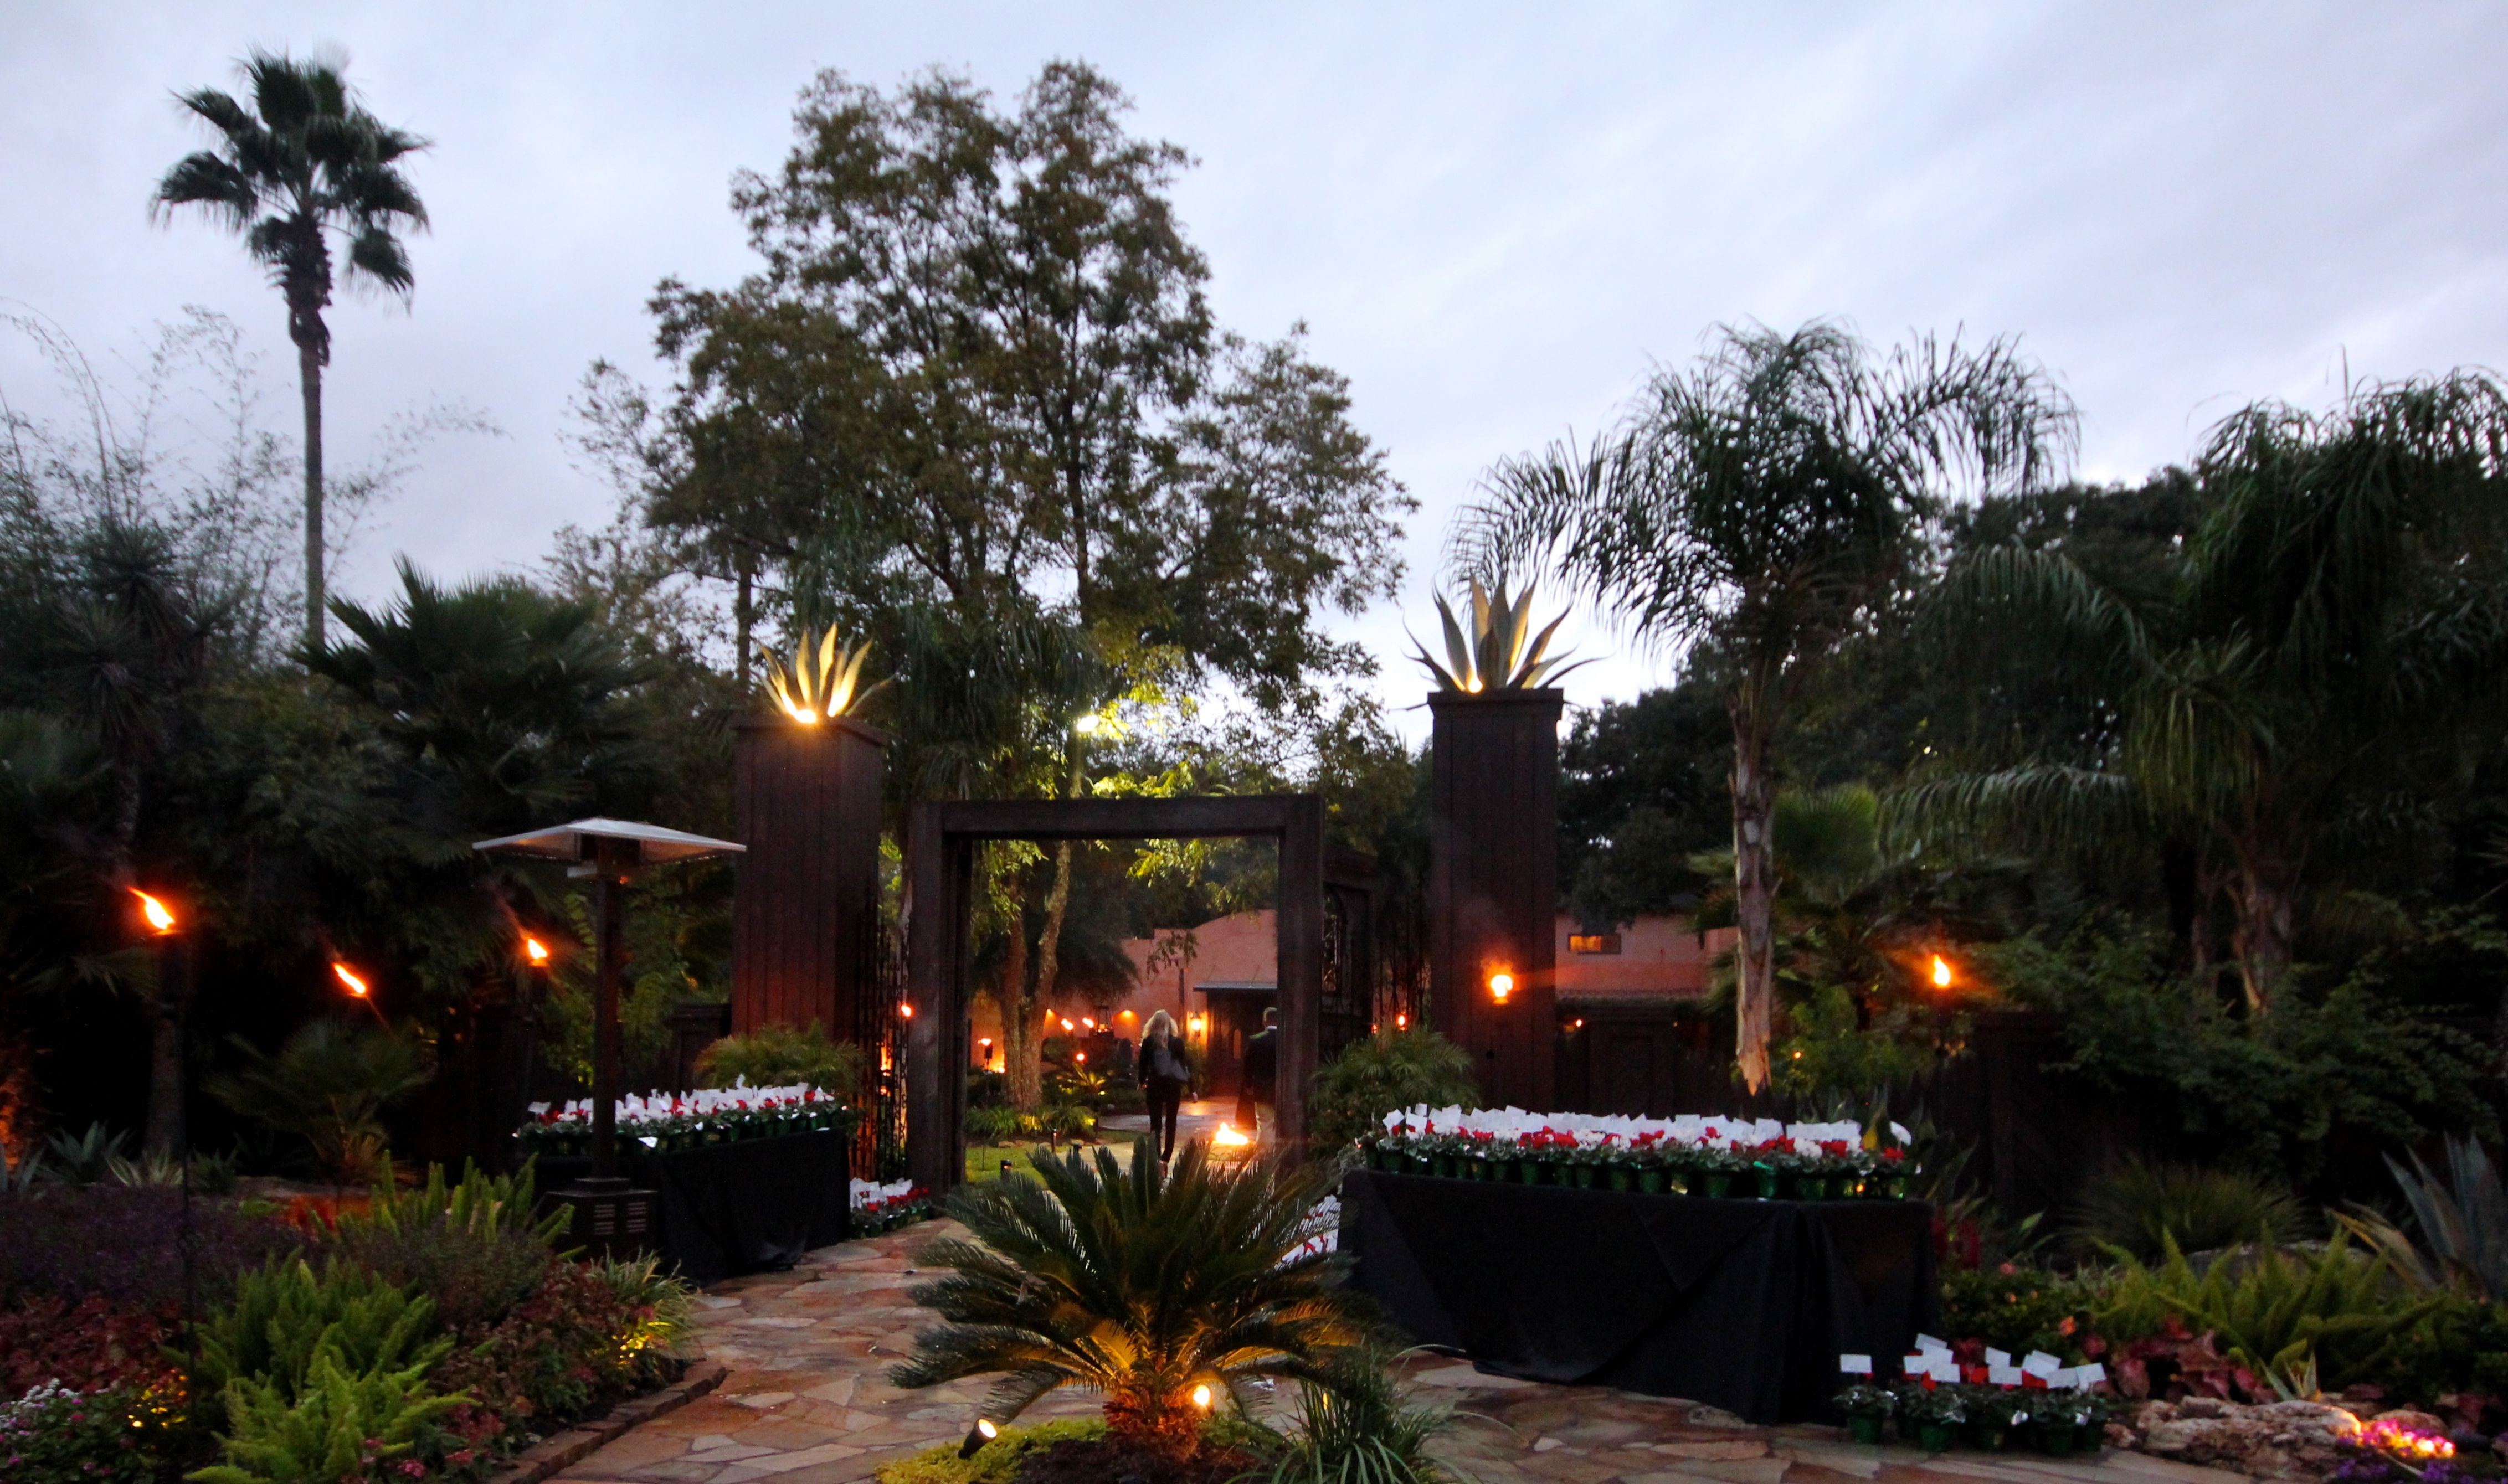 Agave Estates Wedding and Event Venue in Katy, TX